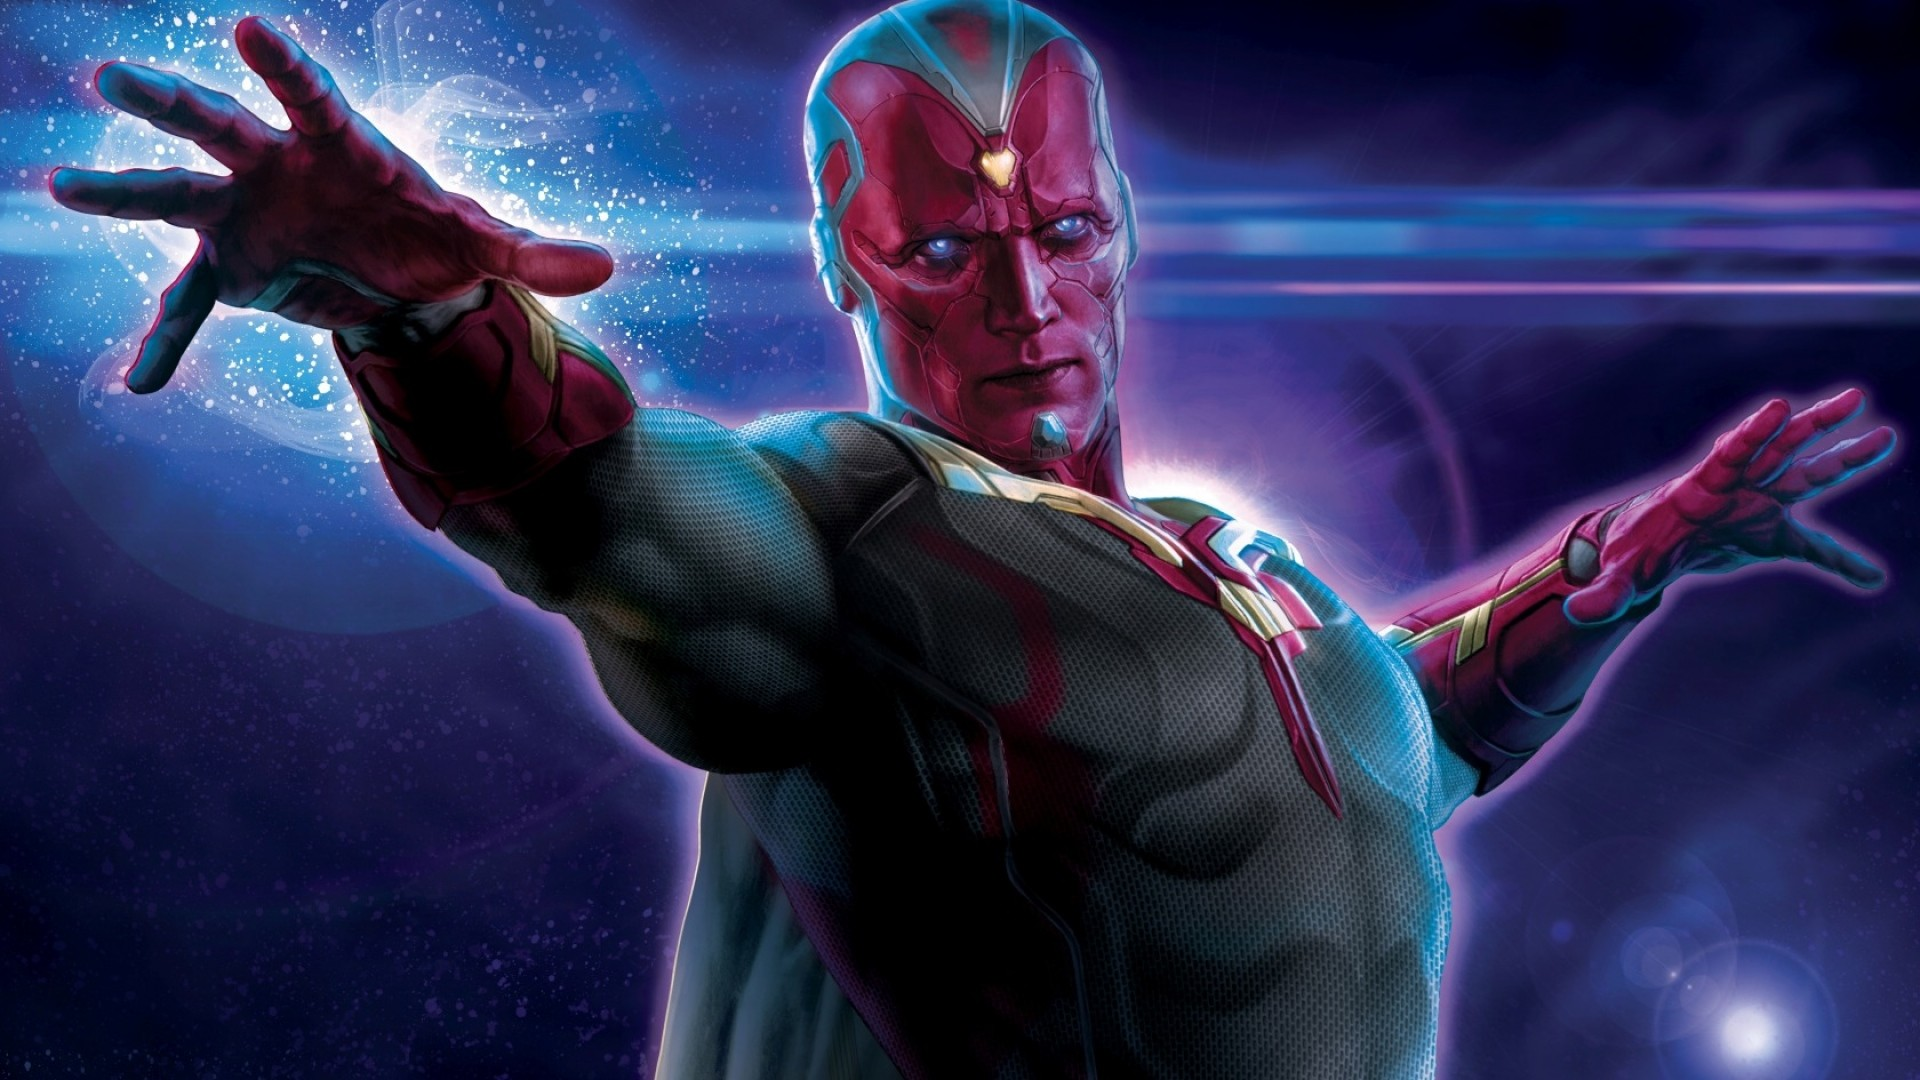 … Background Full HD 1080p. Wallpaper avengers, age of ultron,  paul bettany, vision